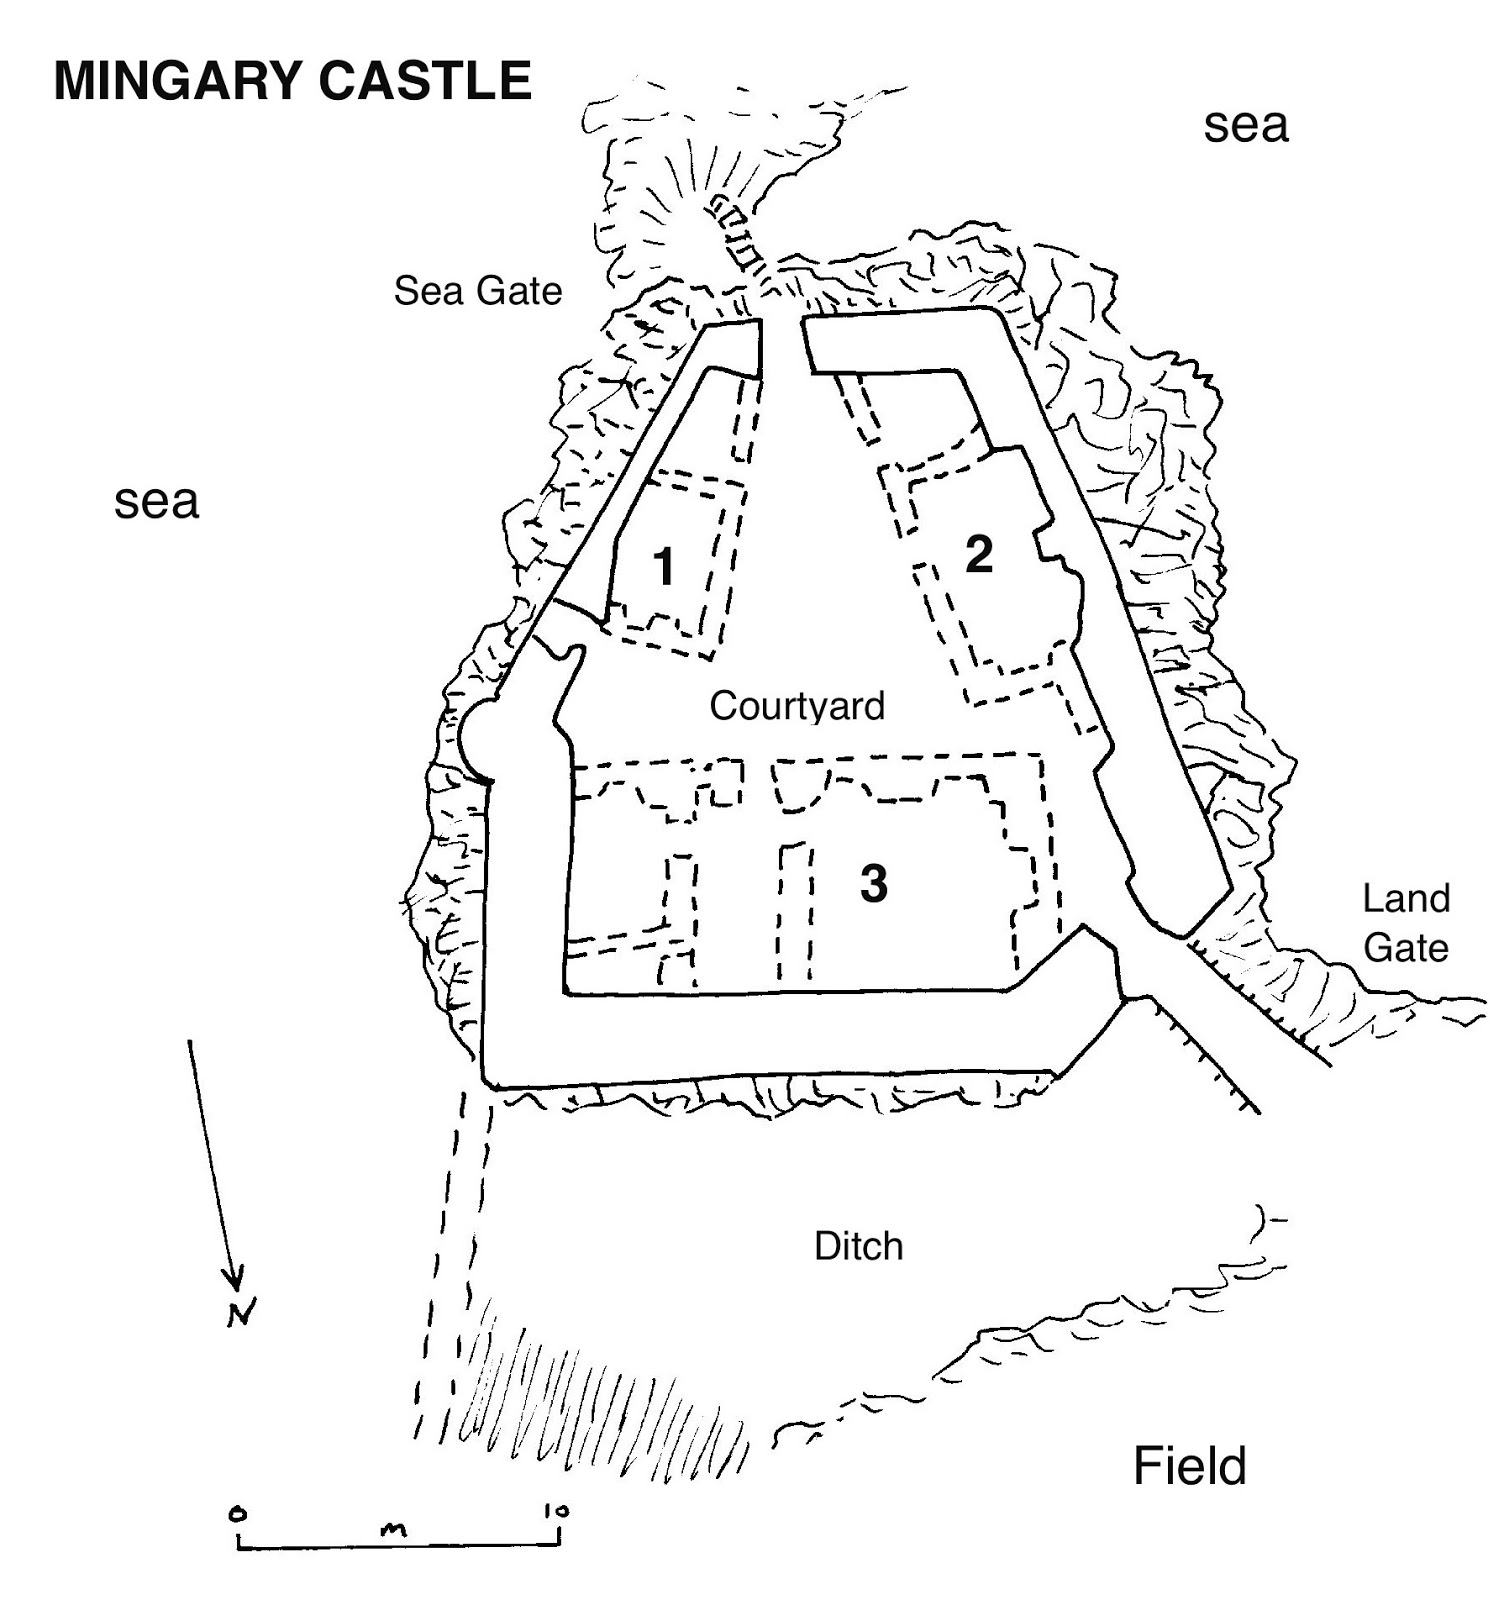 Mingary Castle: The Courtyard of Mingary Castle